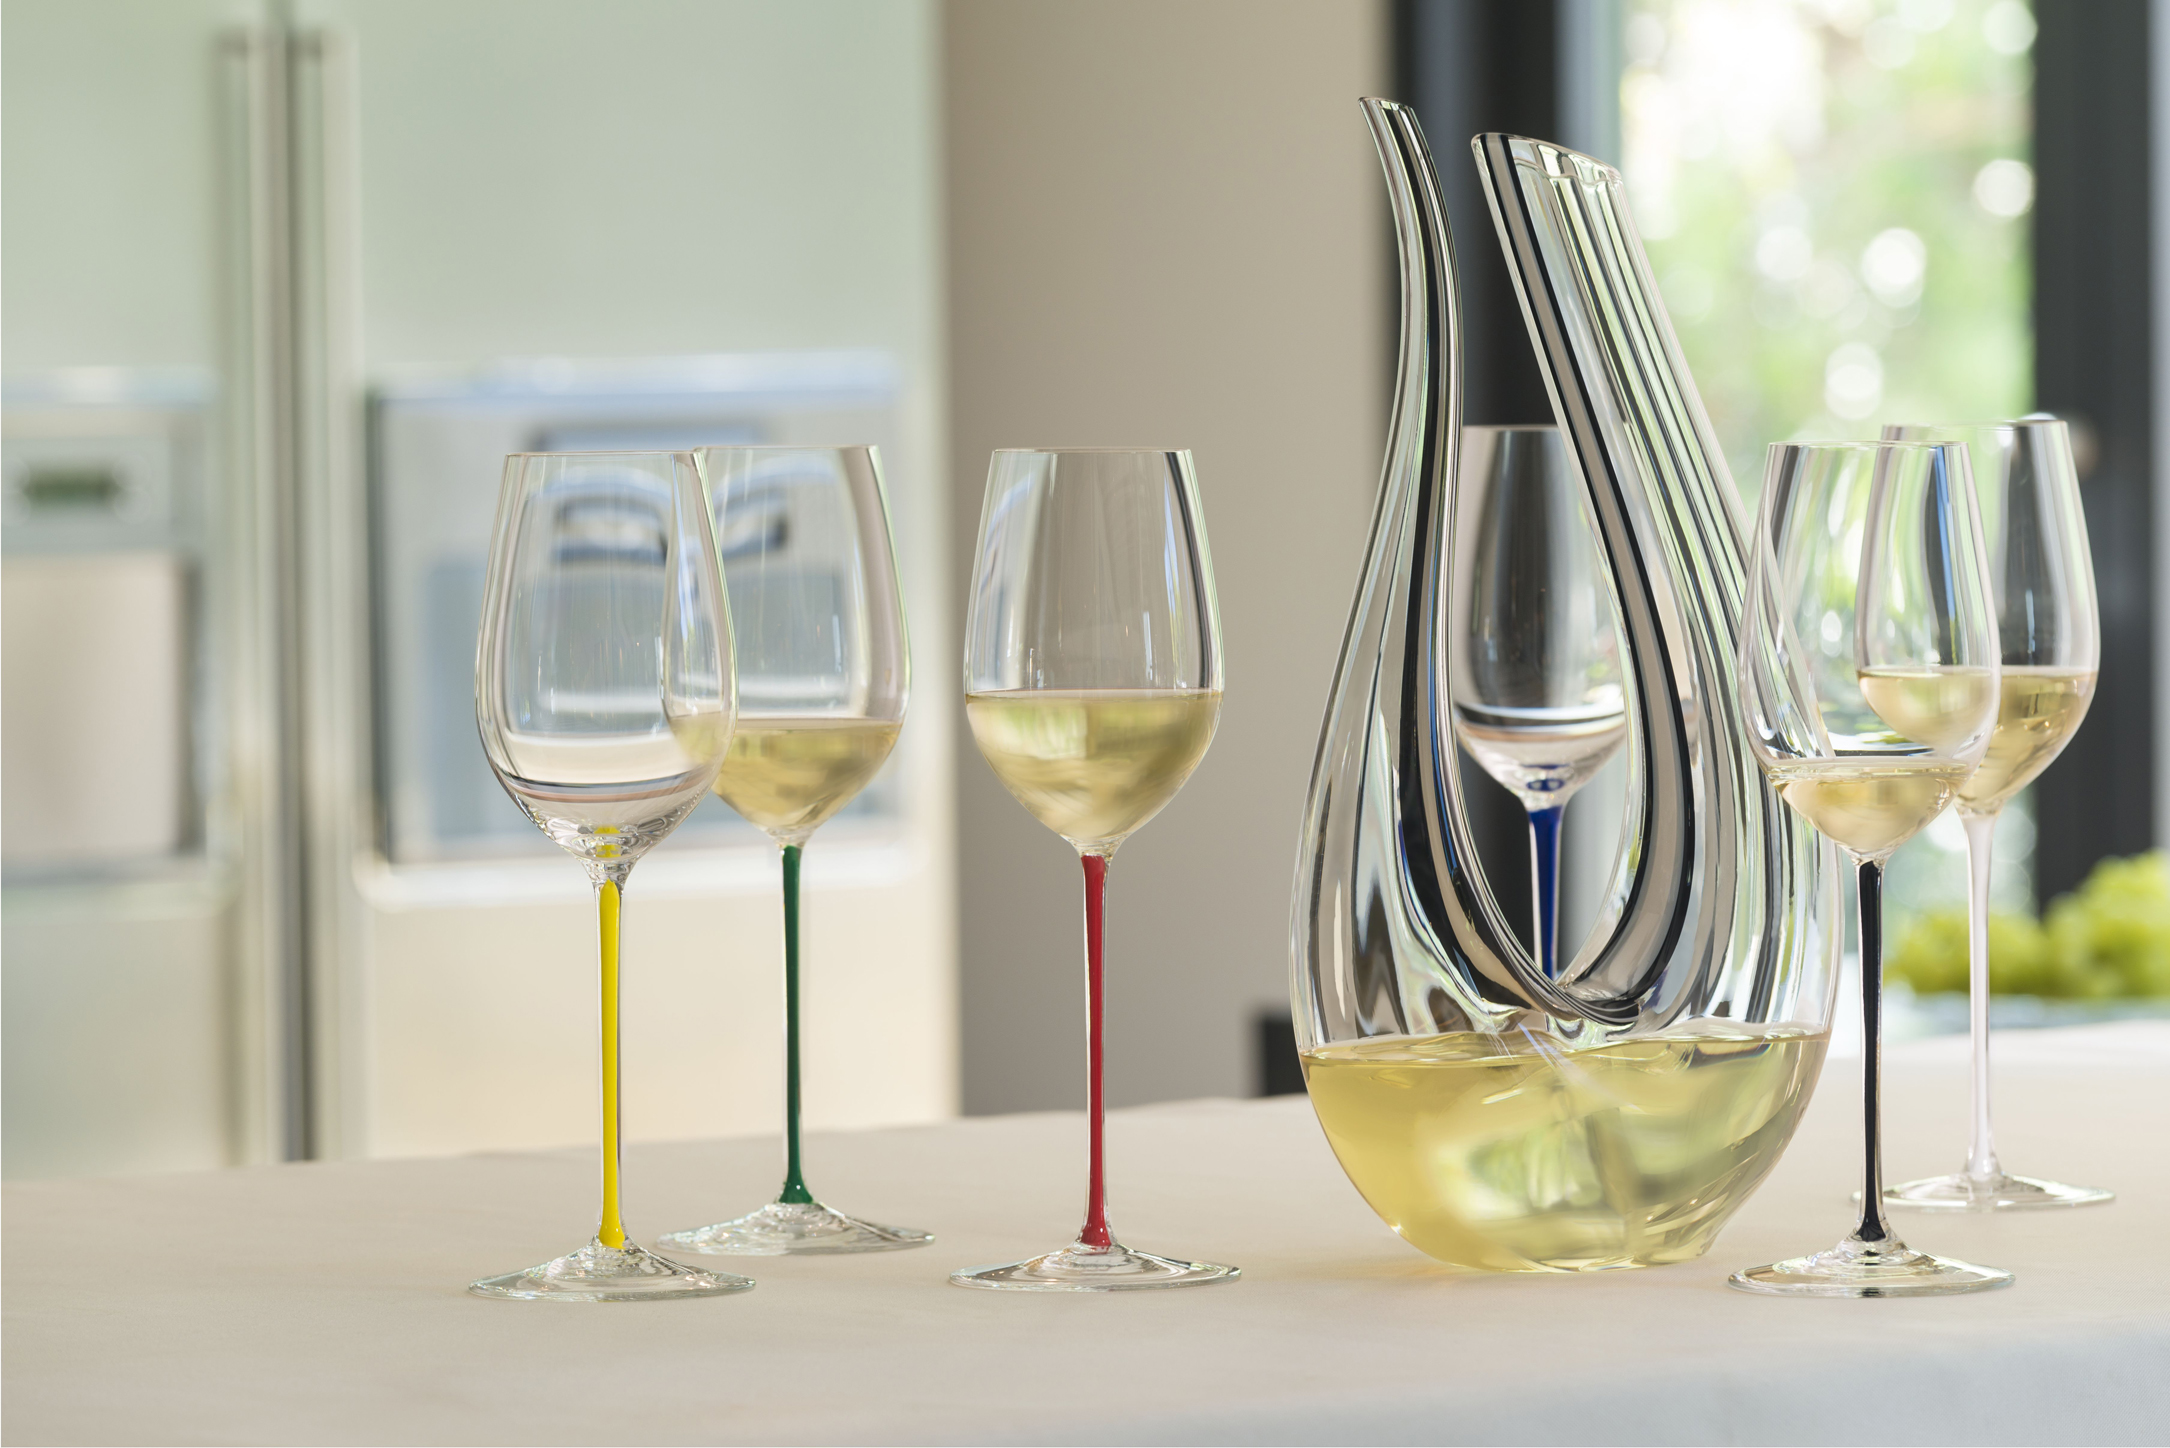 Riedel stemware from the Fatto A Mano collection